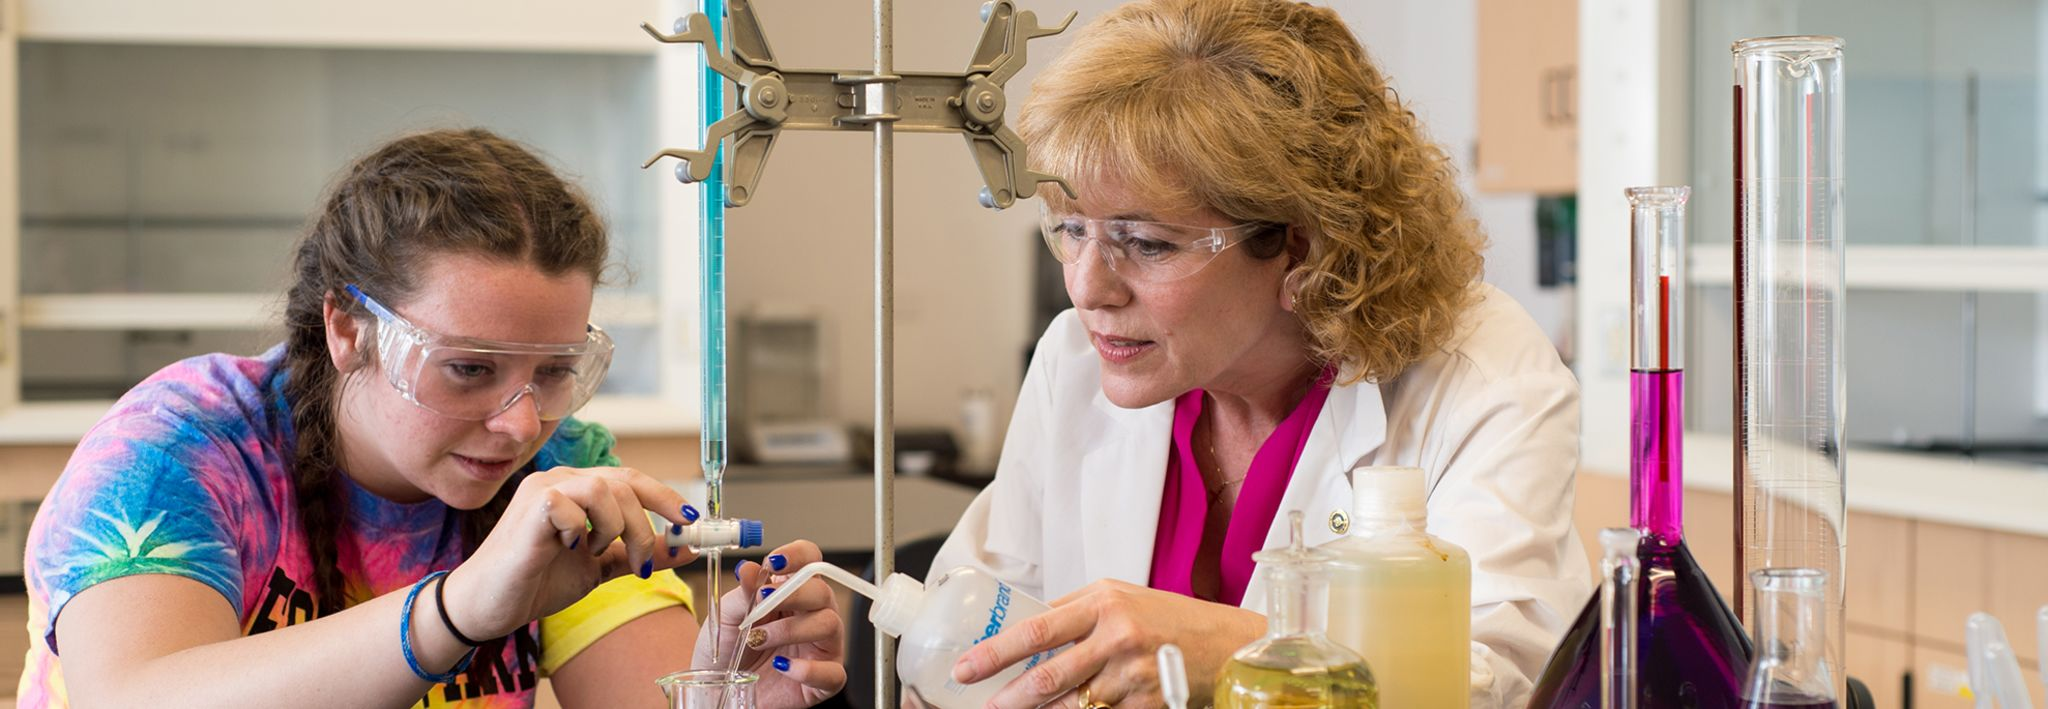 CCU professor helping a student with her lab project.